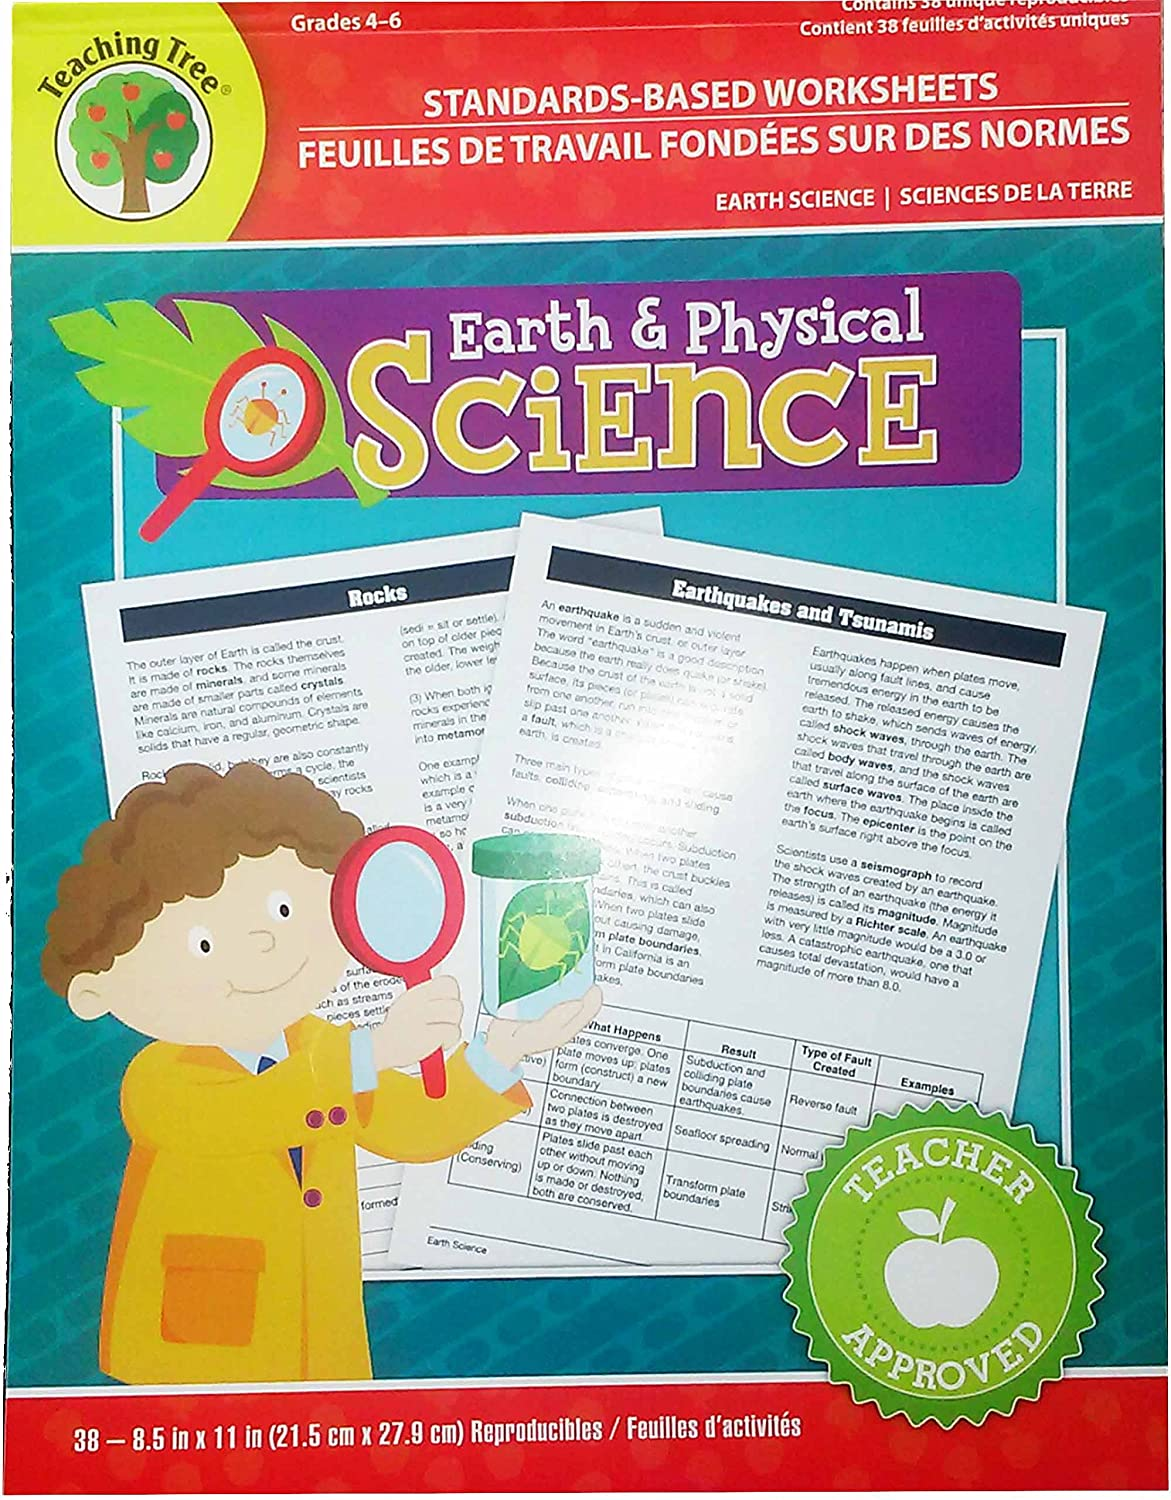 Standards-based Worksheets Grades 4-6 (earth & Physical Science)